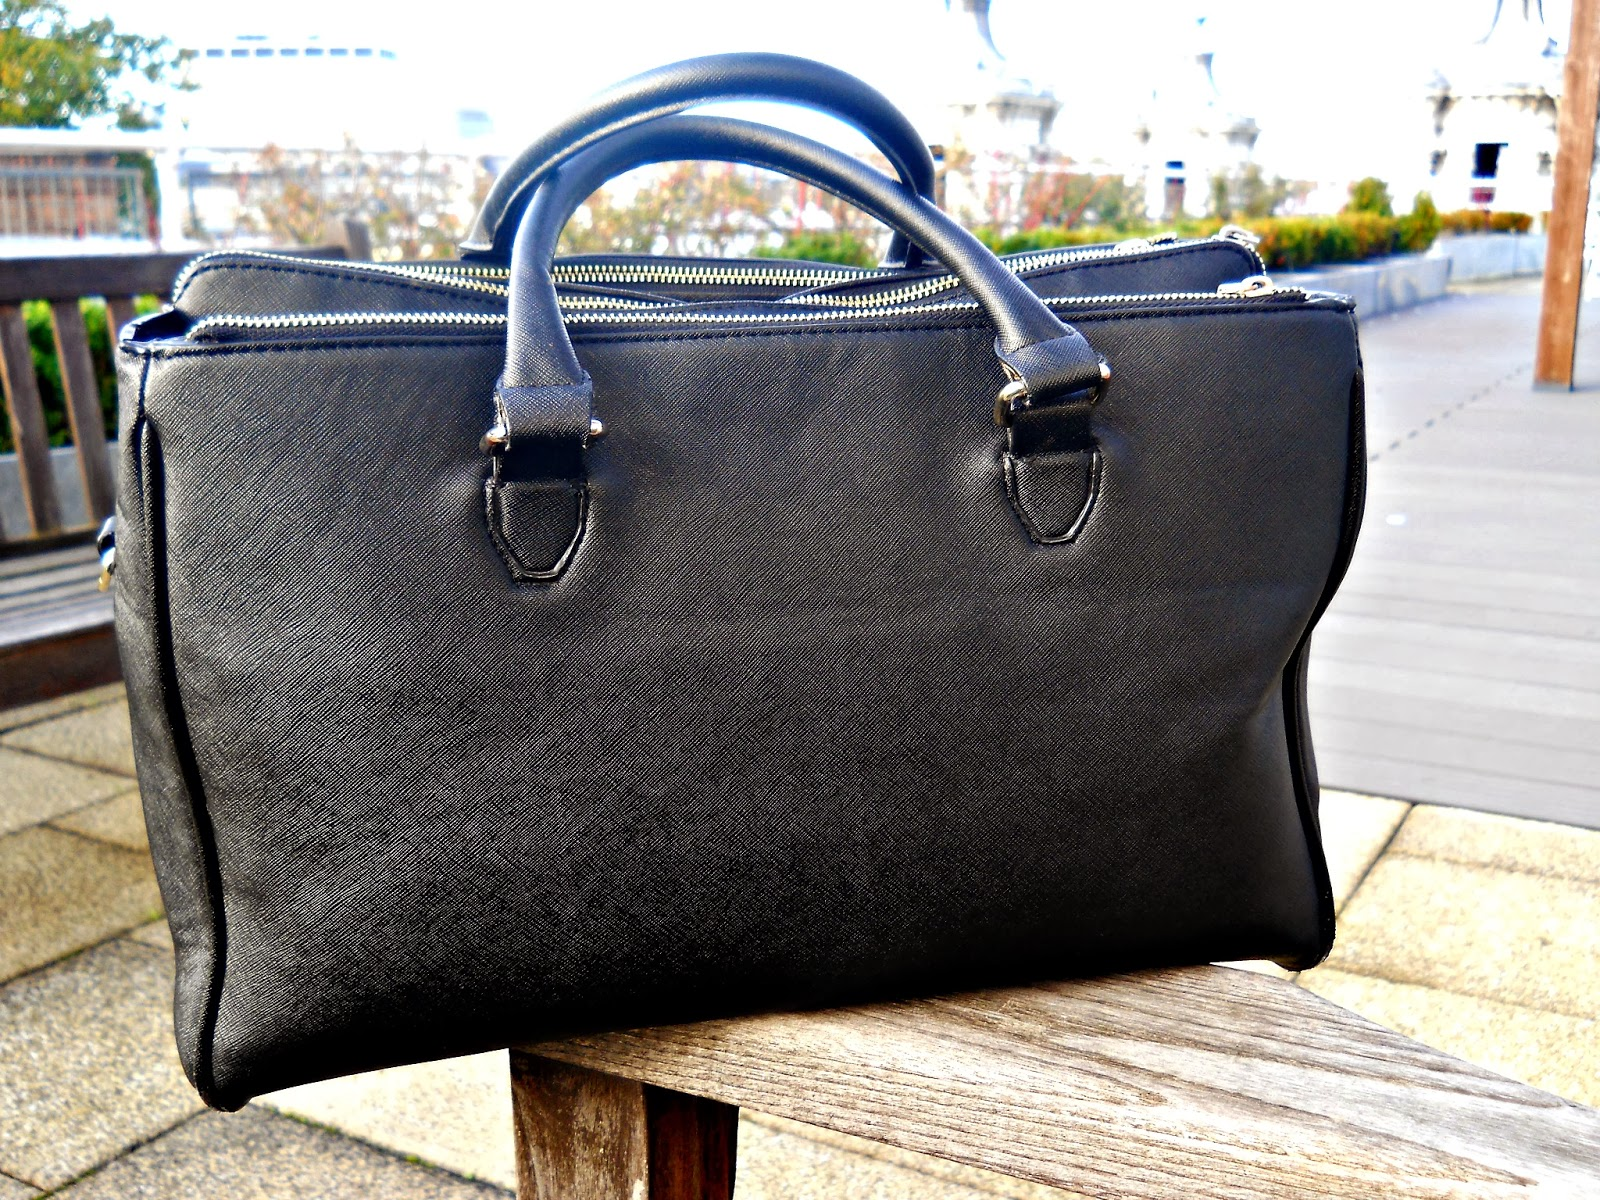 ae1cad8dfca Zara Office City Bag Review. Hey My Lovelies, I hope you had a smashing  weekend. It's been a while since i put up a fashion post..i think the last  one was ...